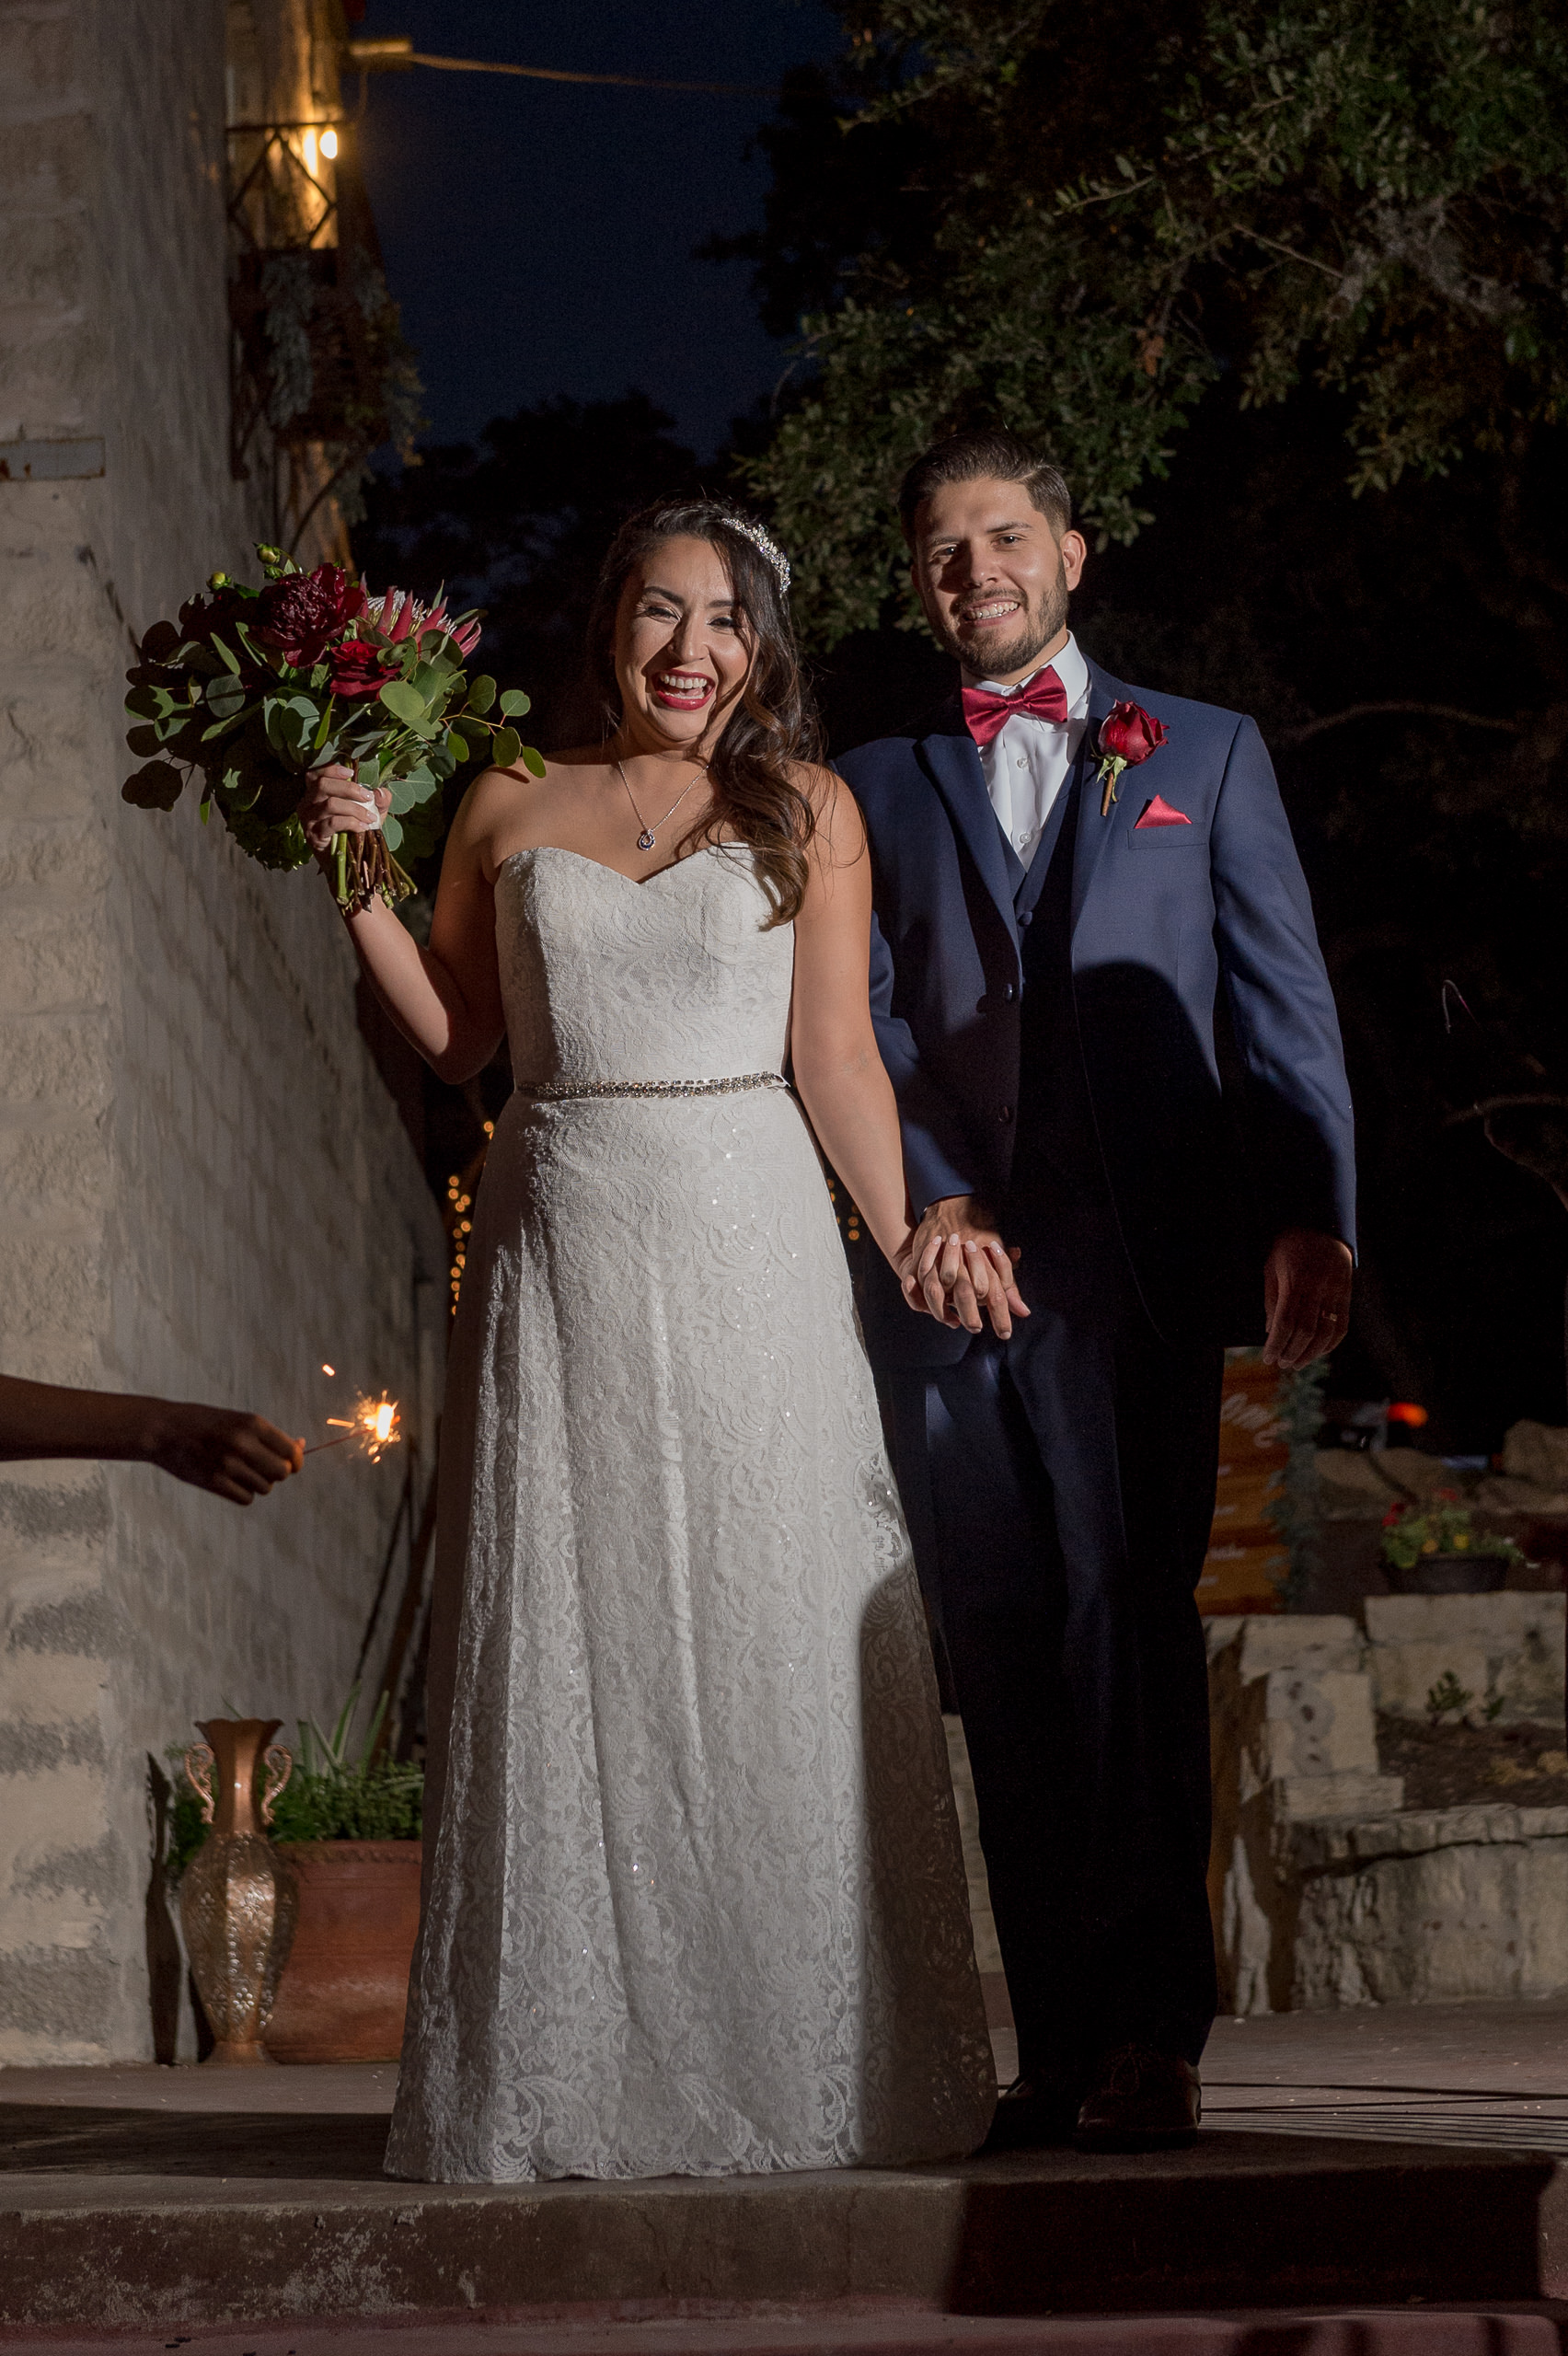 red-white-and-blue-wedding-inspiration-helotes-hill-country-wedding-san-antonio-wedding-photographers-_4S21932